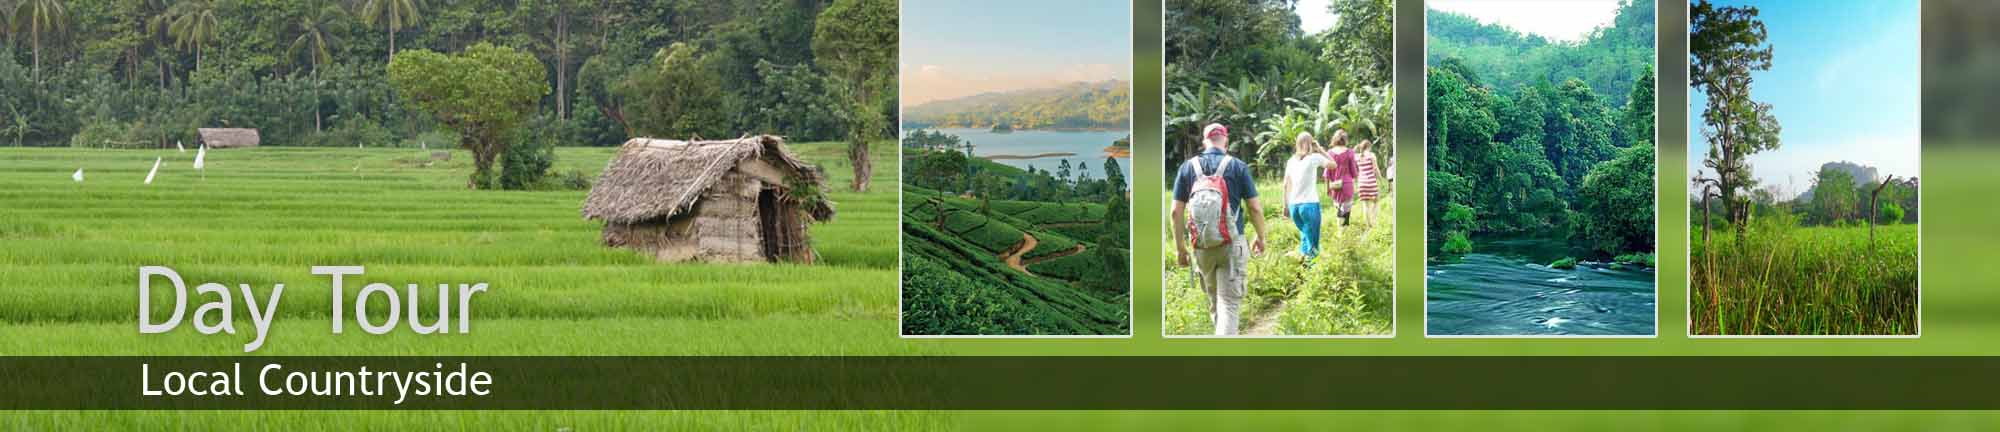 inora-travel-lanka-day-tour-banner-local-countryside